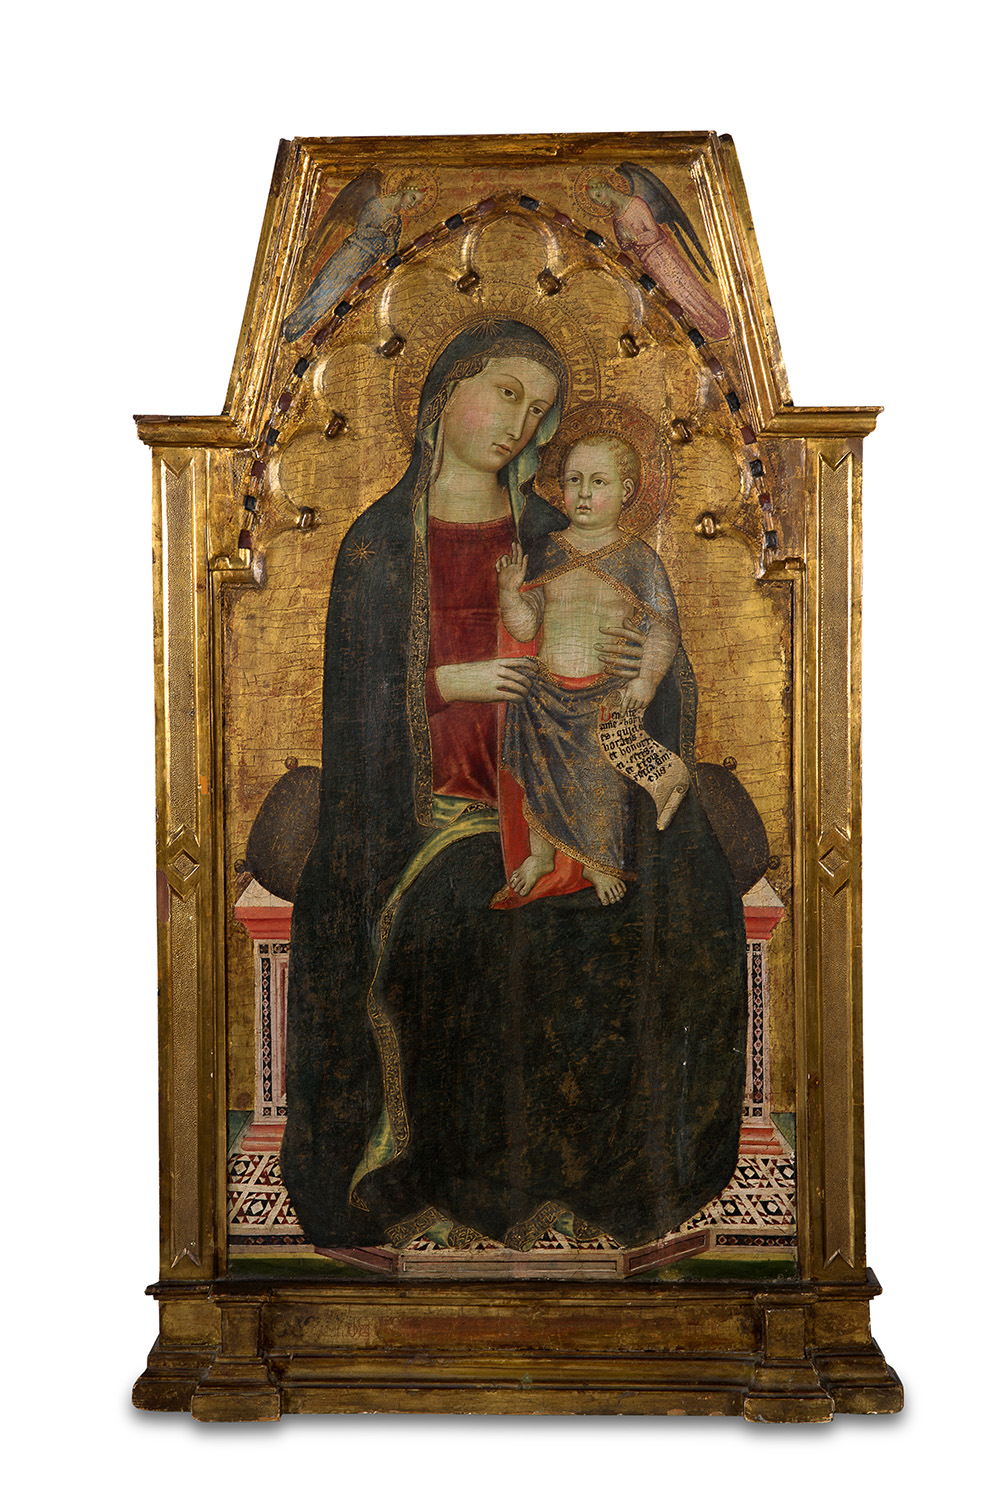 Cecco di Pietro (1330-1402), Madonna and Child, Pisa, c. 1365, tempera and gold leaf on poplar wood, 110.8 x 63.2 cm (total surface area)E